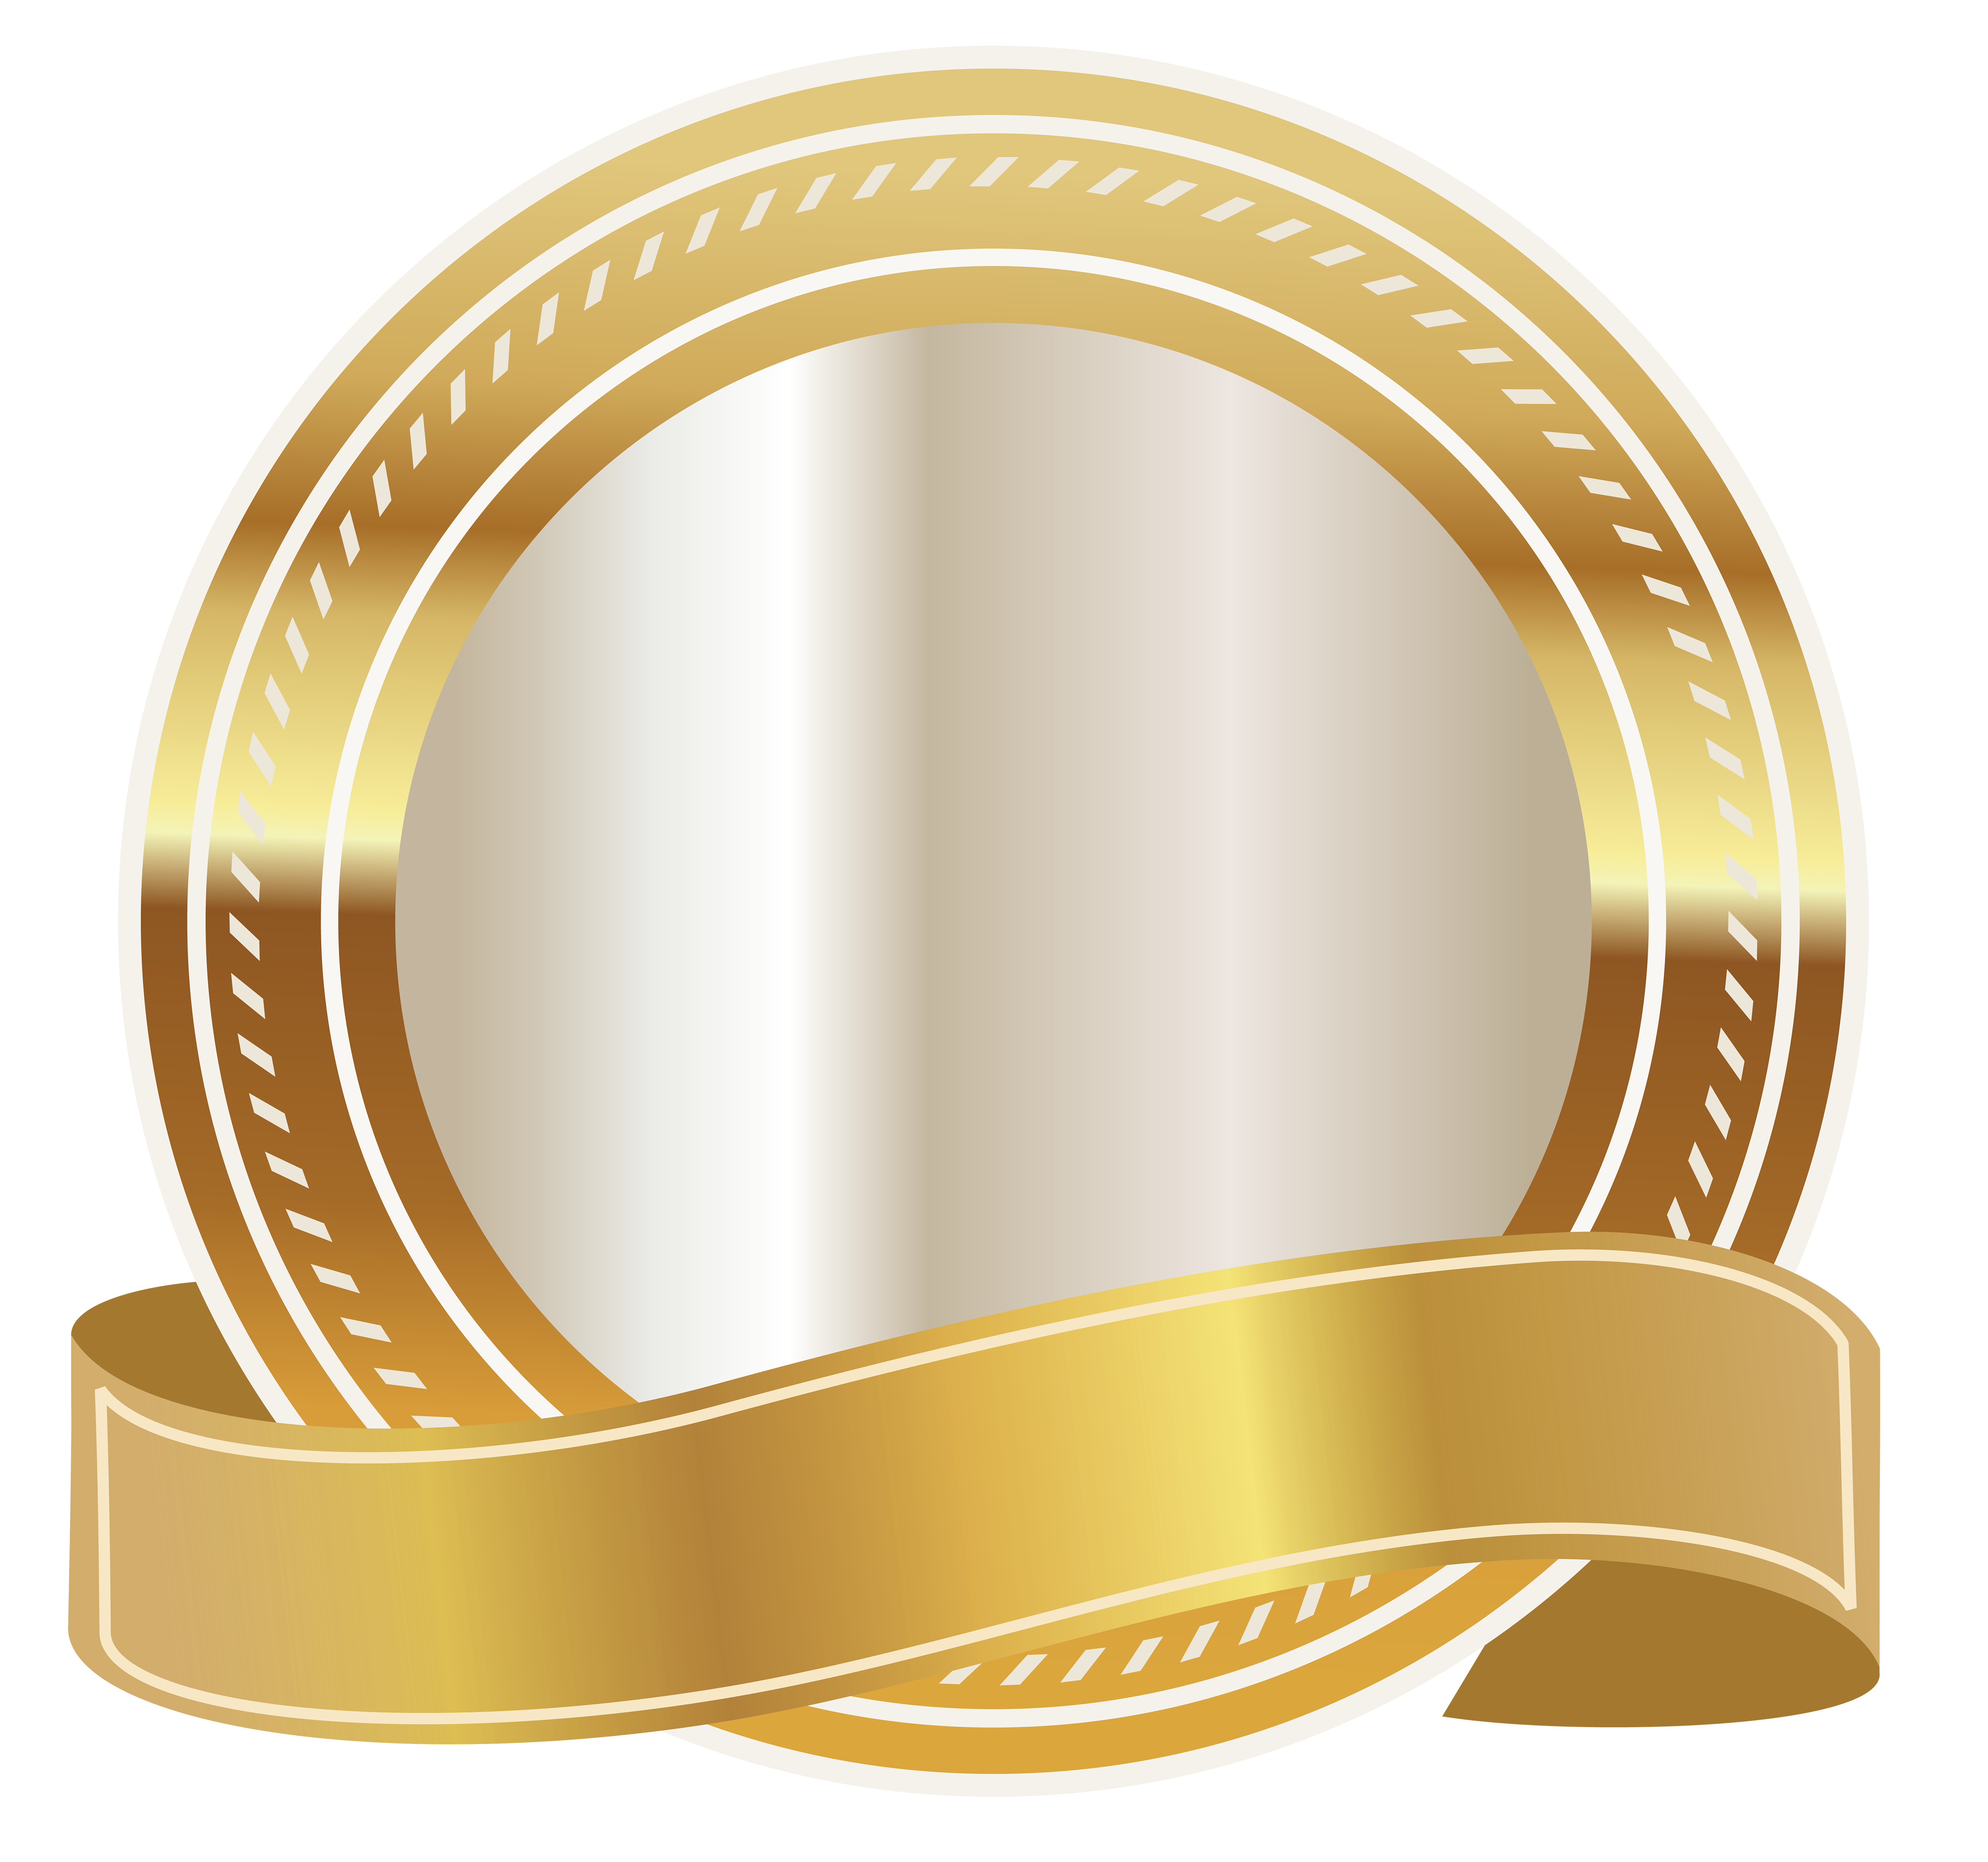 Gold seal with ribbon. Label clipart royalty free